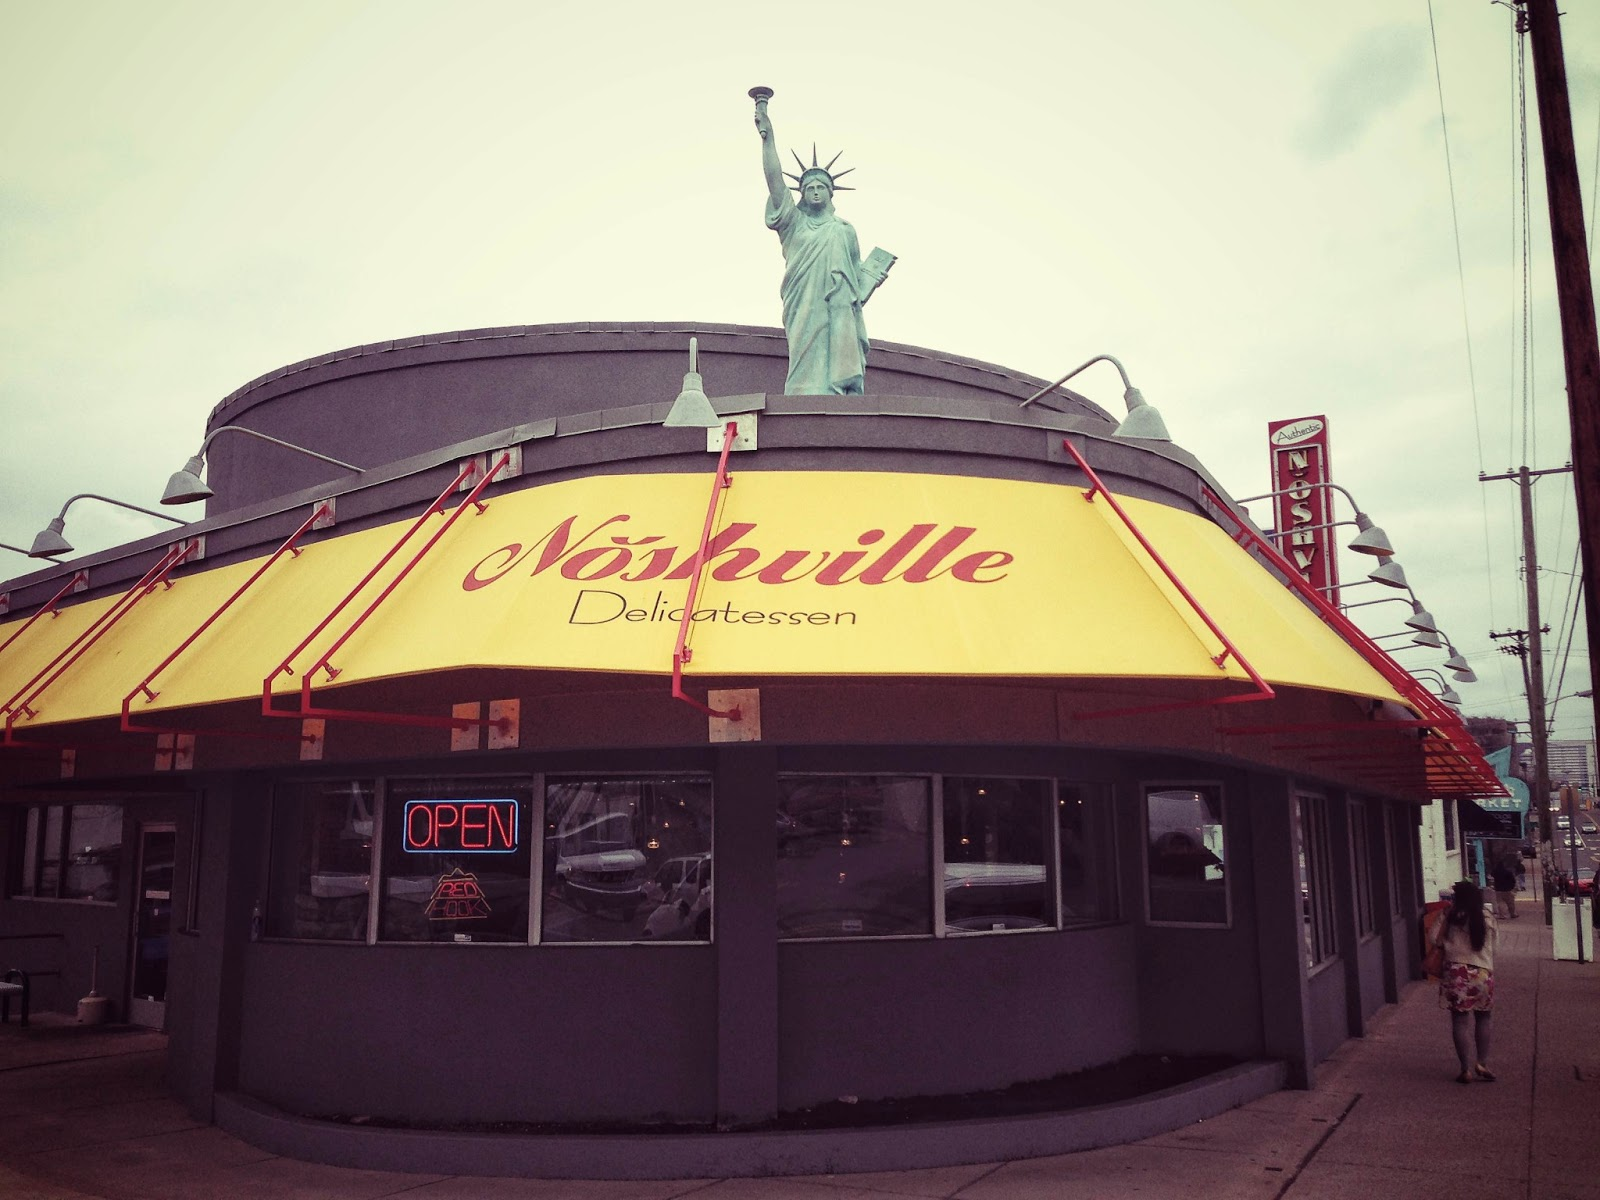 Noshville Delicatessen located in Nashville Tennessee